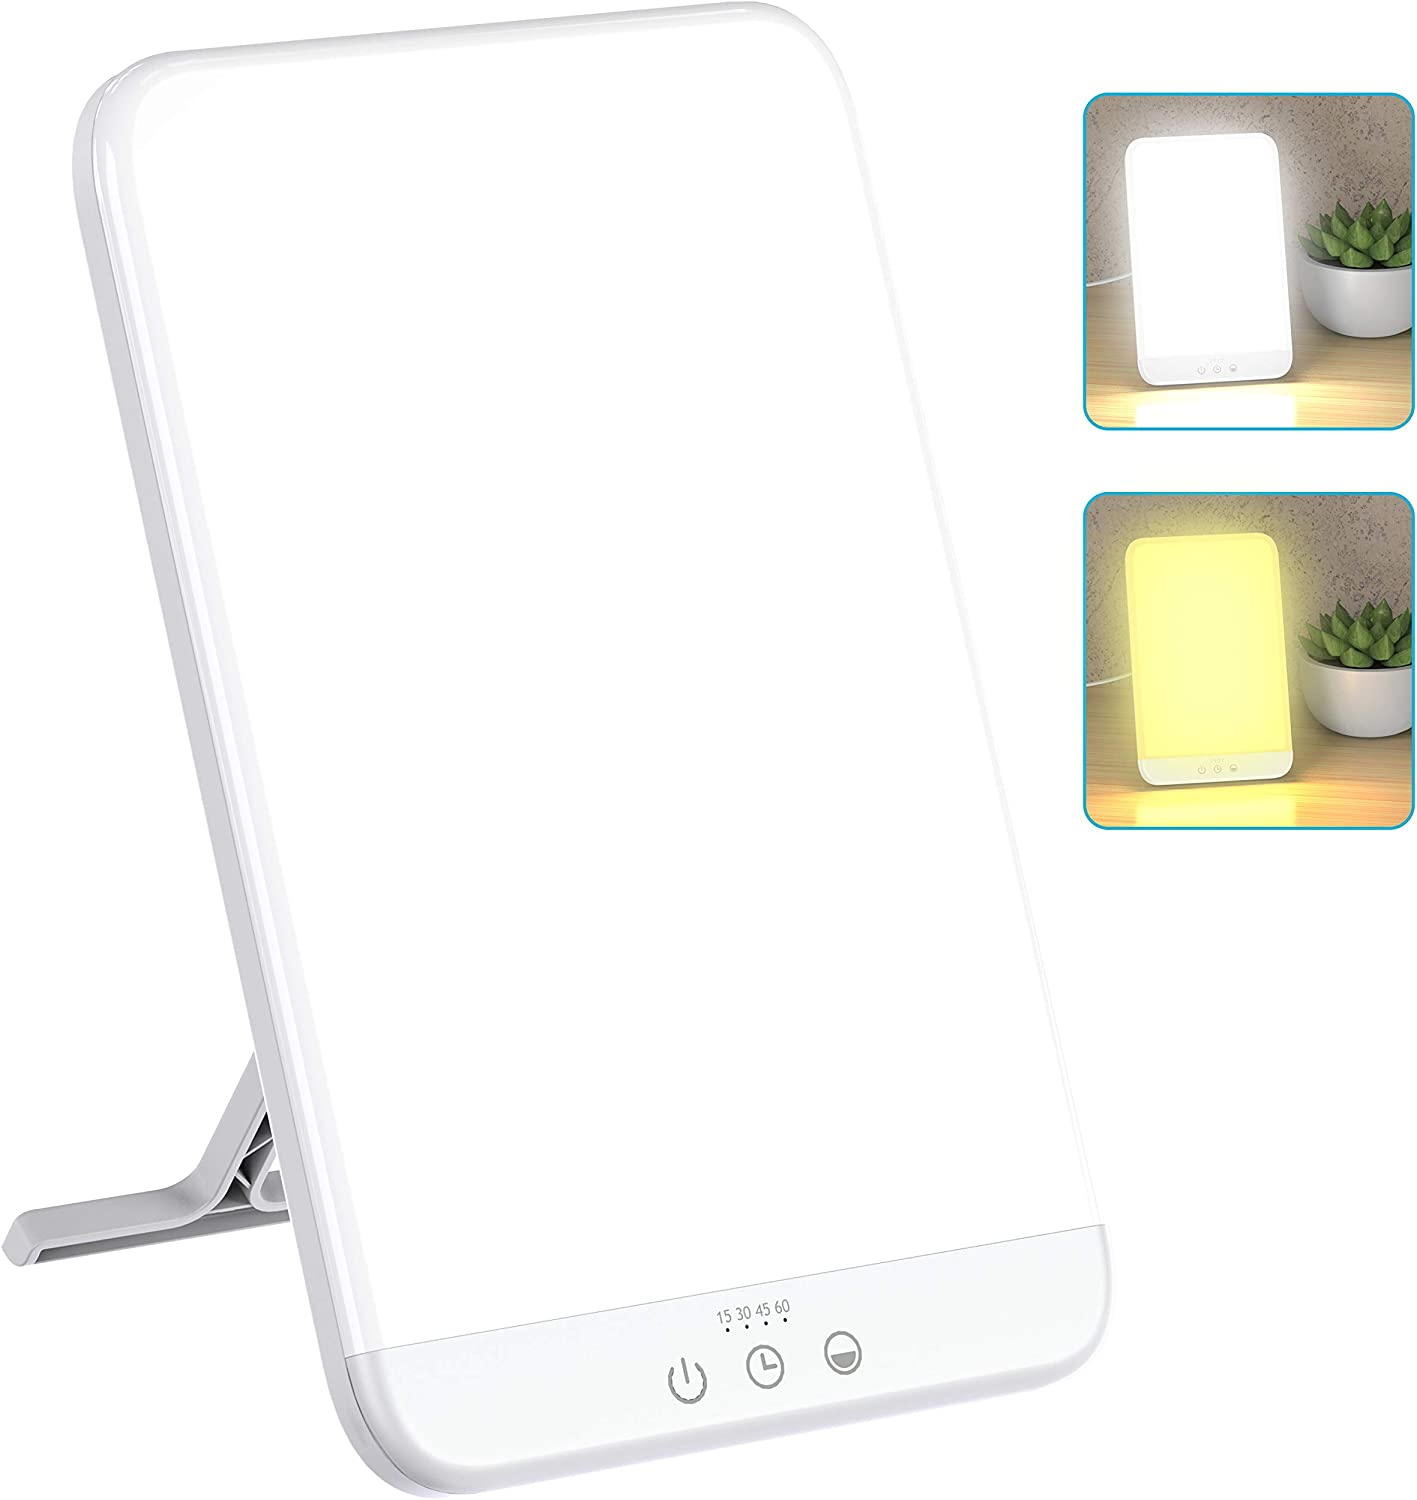 Light Therapy Lamp, Ultra-Thin UV-Free 10000 Lux Therapy Light, Timer Function, Adjustable Brightness Levels, Two Color Temperature, 90° Rotatable Stand for a Happy Life: Health & Personal Care